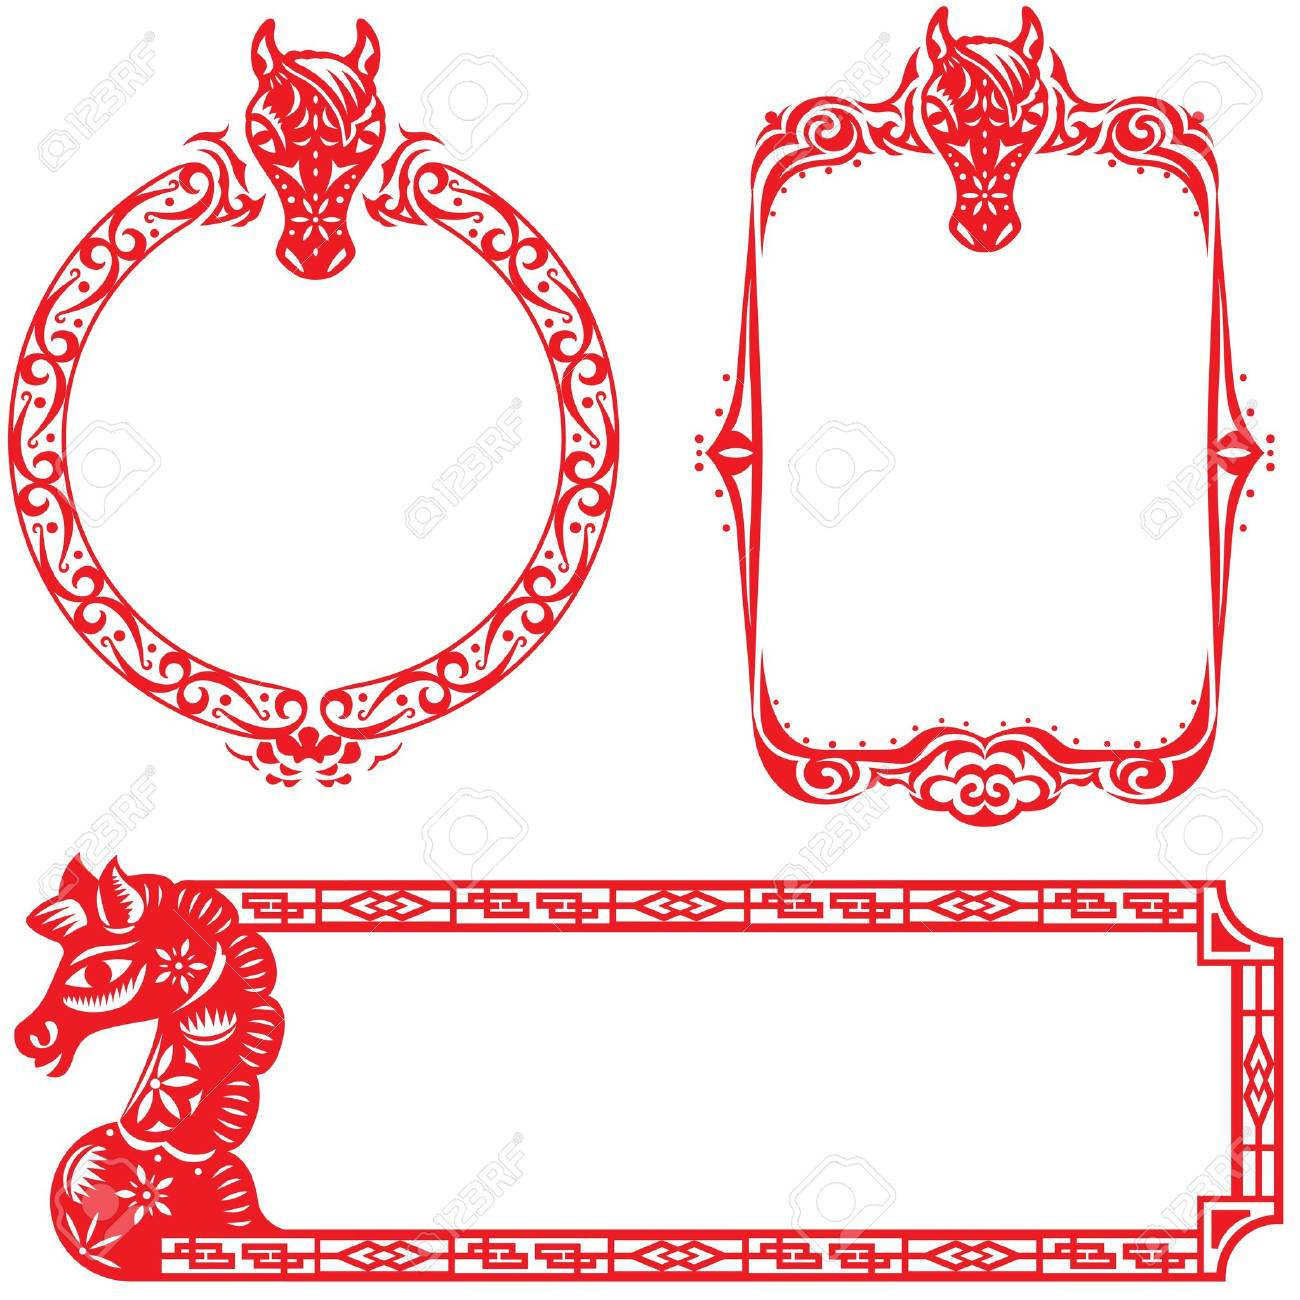 year of horse border design elements illustration set the center rh 123rf com Horse Borders and Frames Page Borders